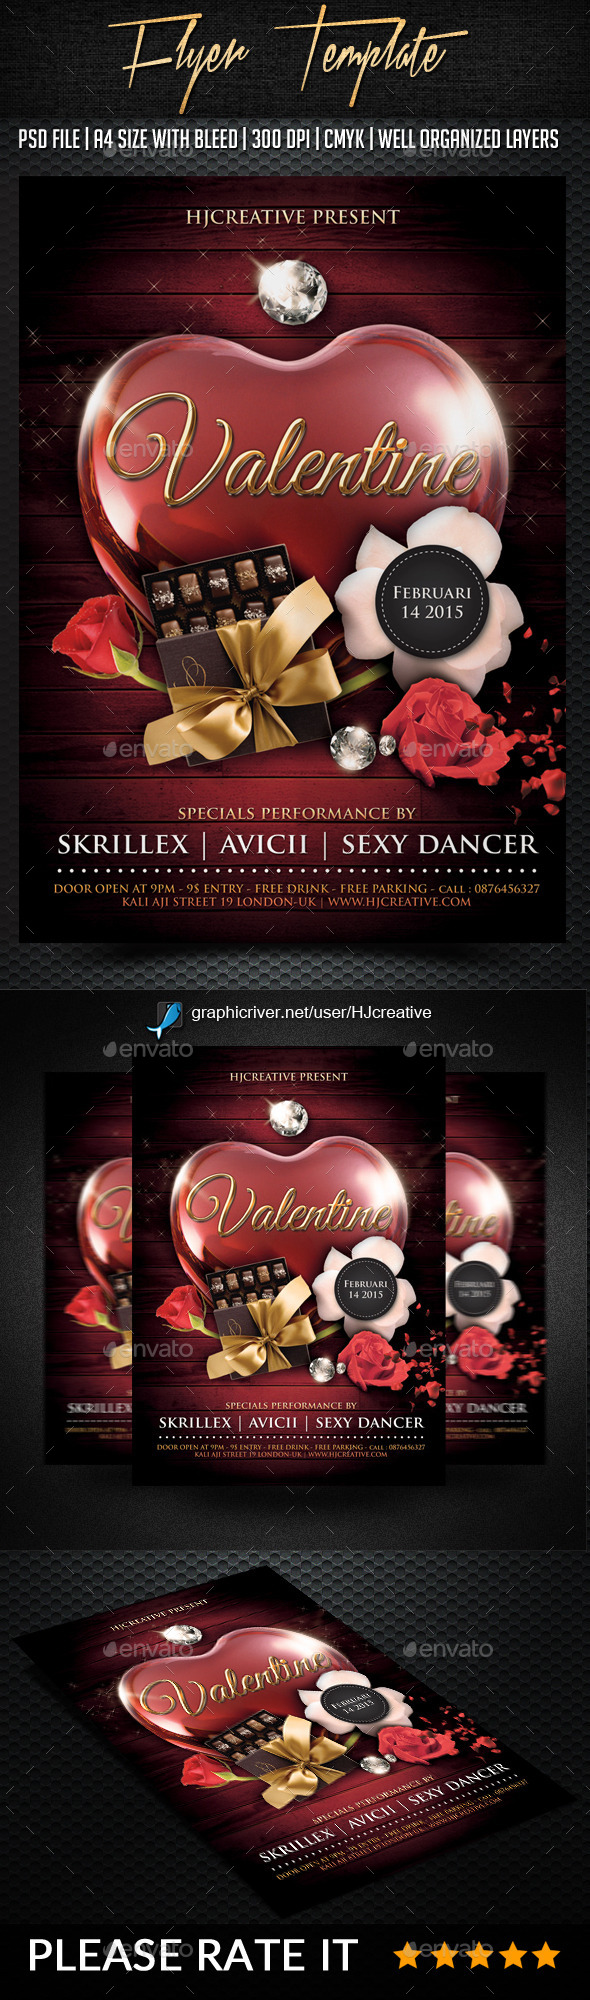 Valentine Poster Flyer Template Vol. 1 - Clubs & Parties Events